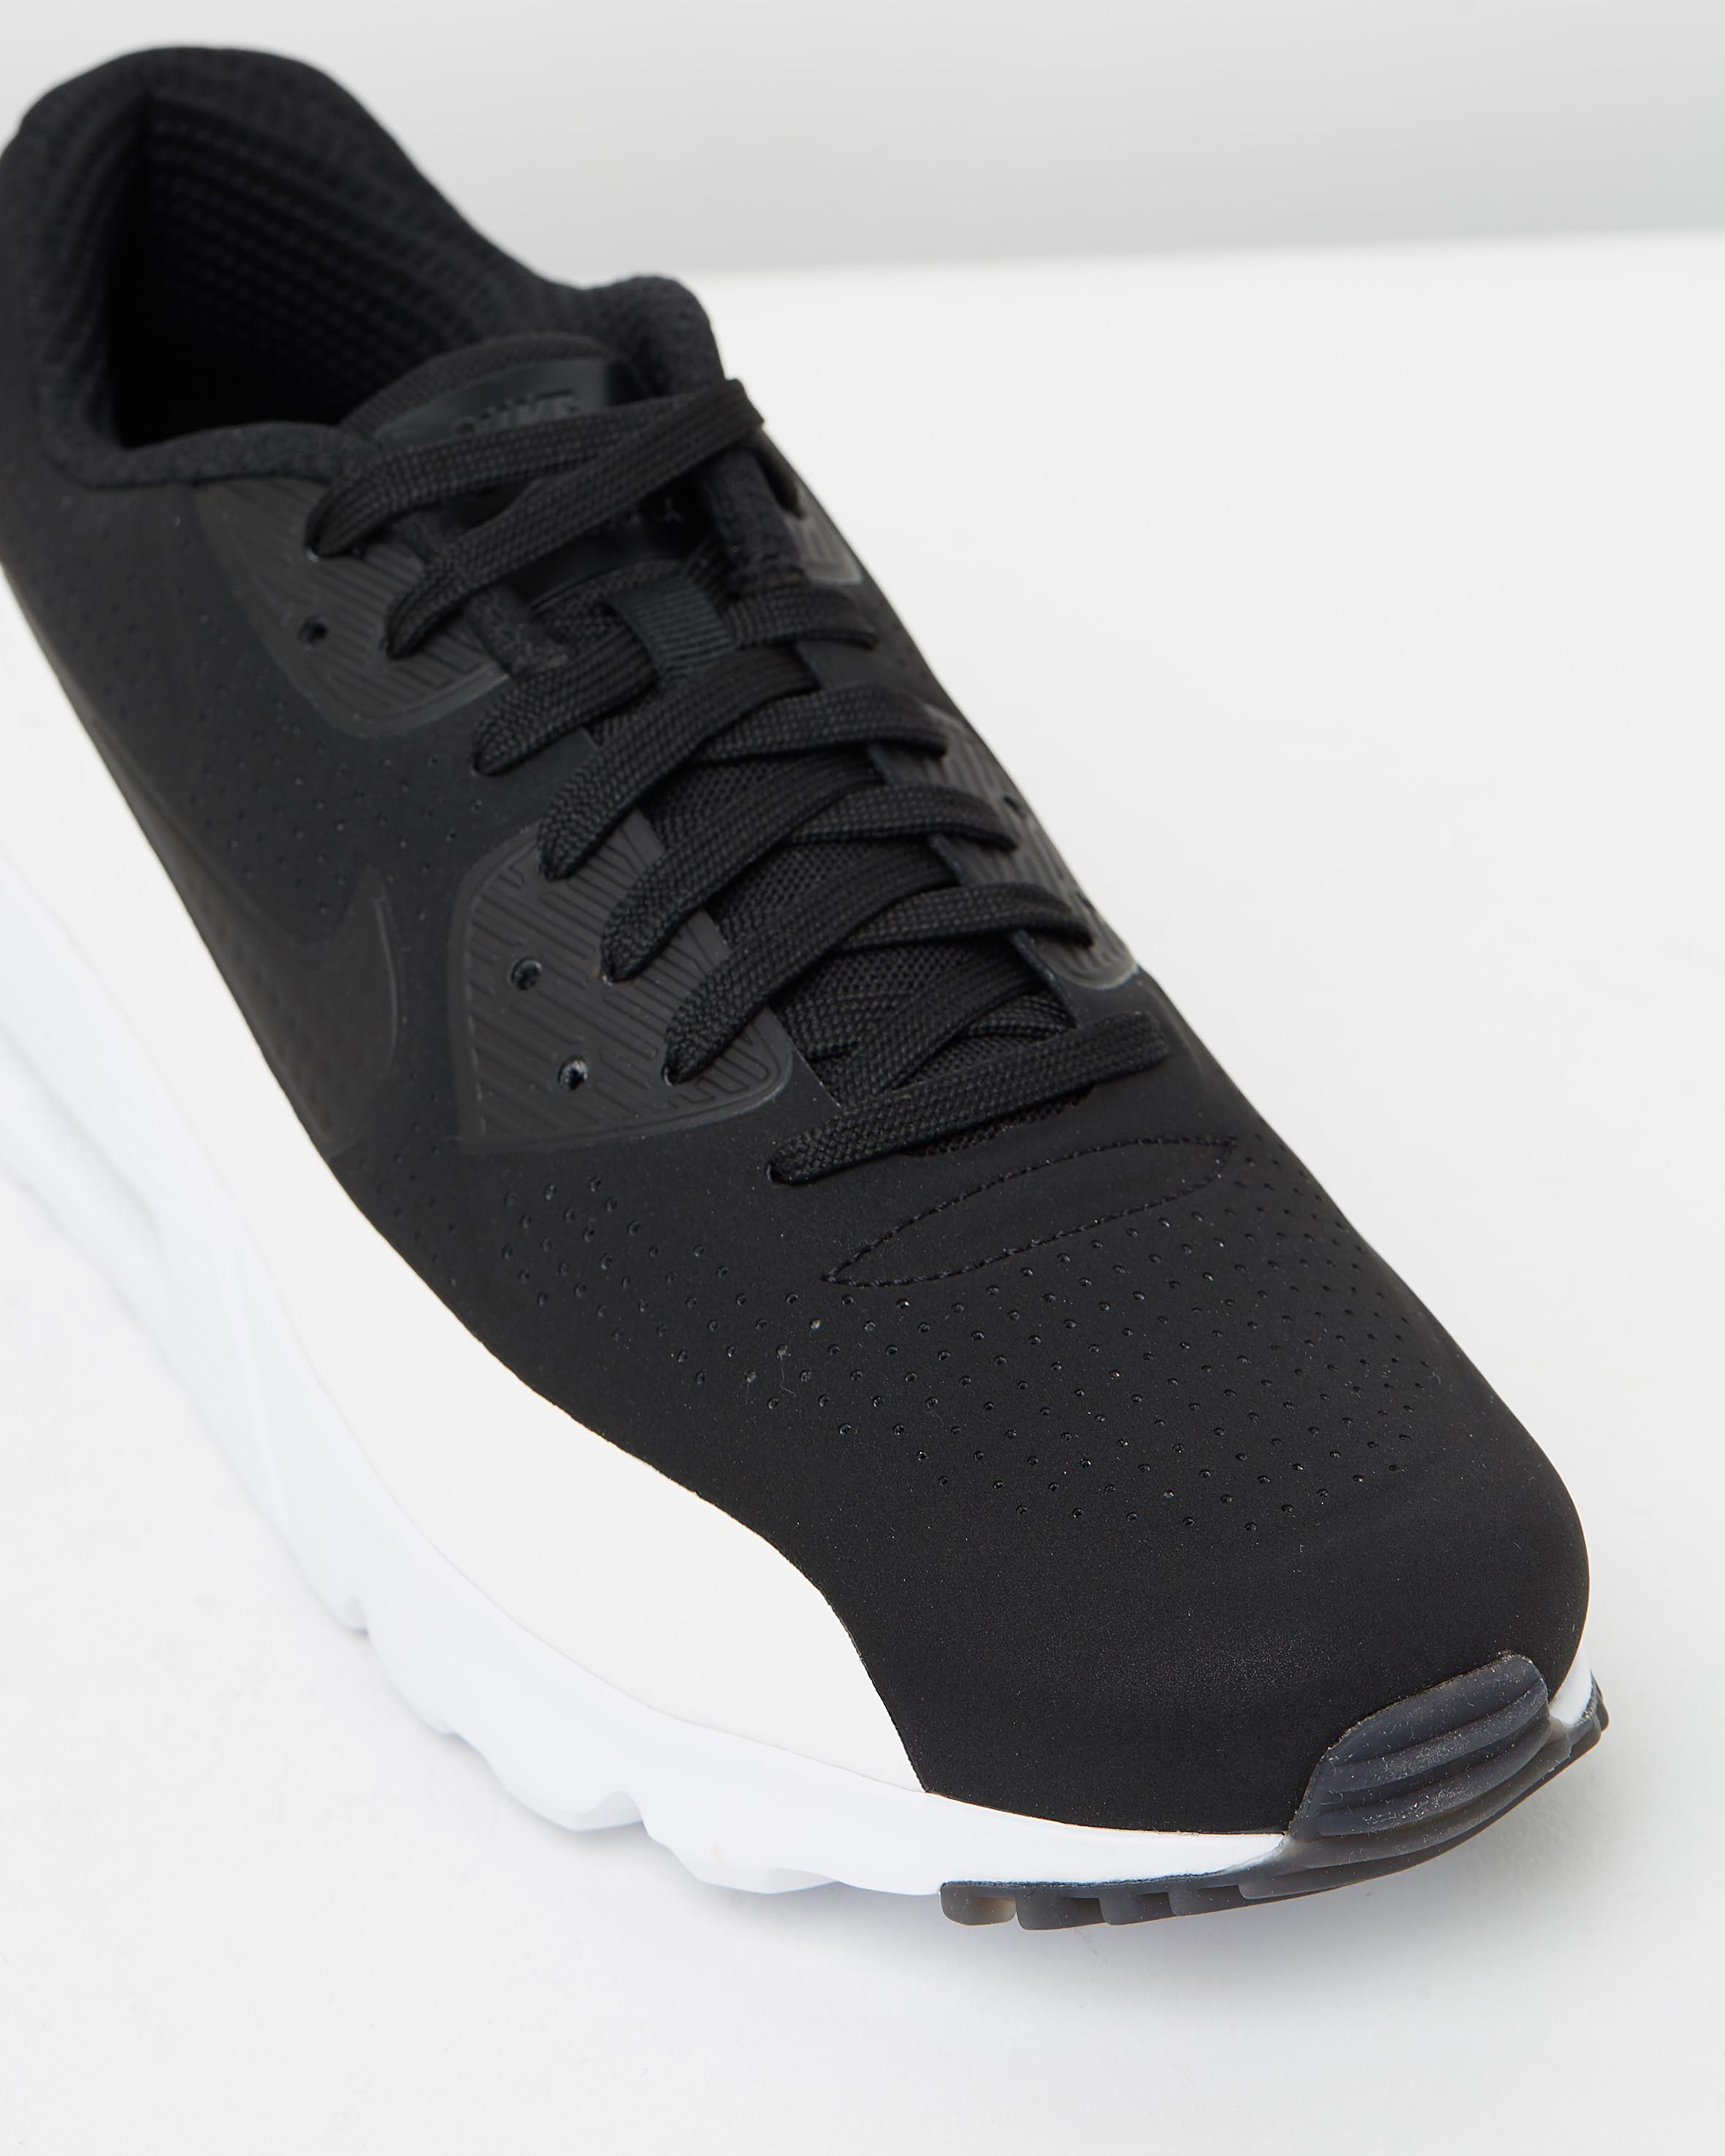 date de sortie 3942e 03571 Nike Air Max 90 Ultra Moire Black & White